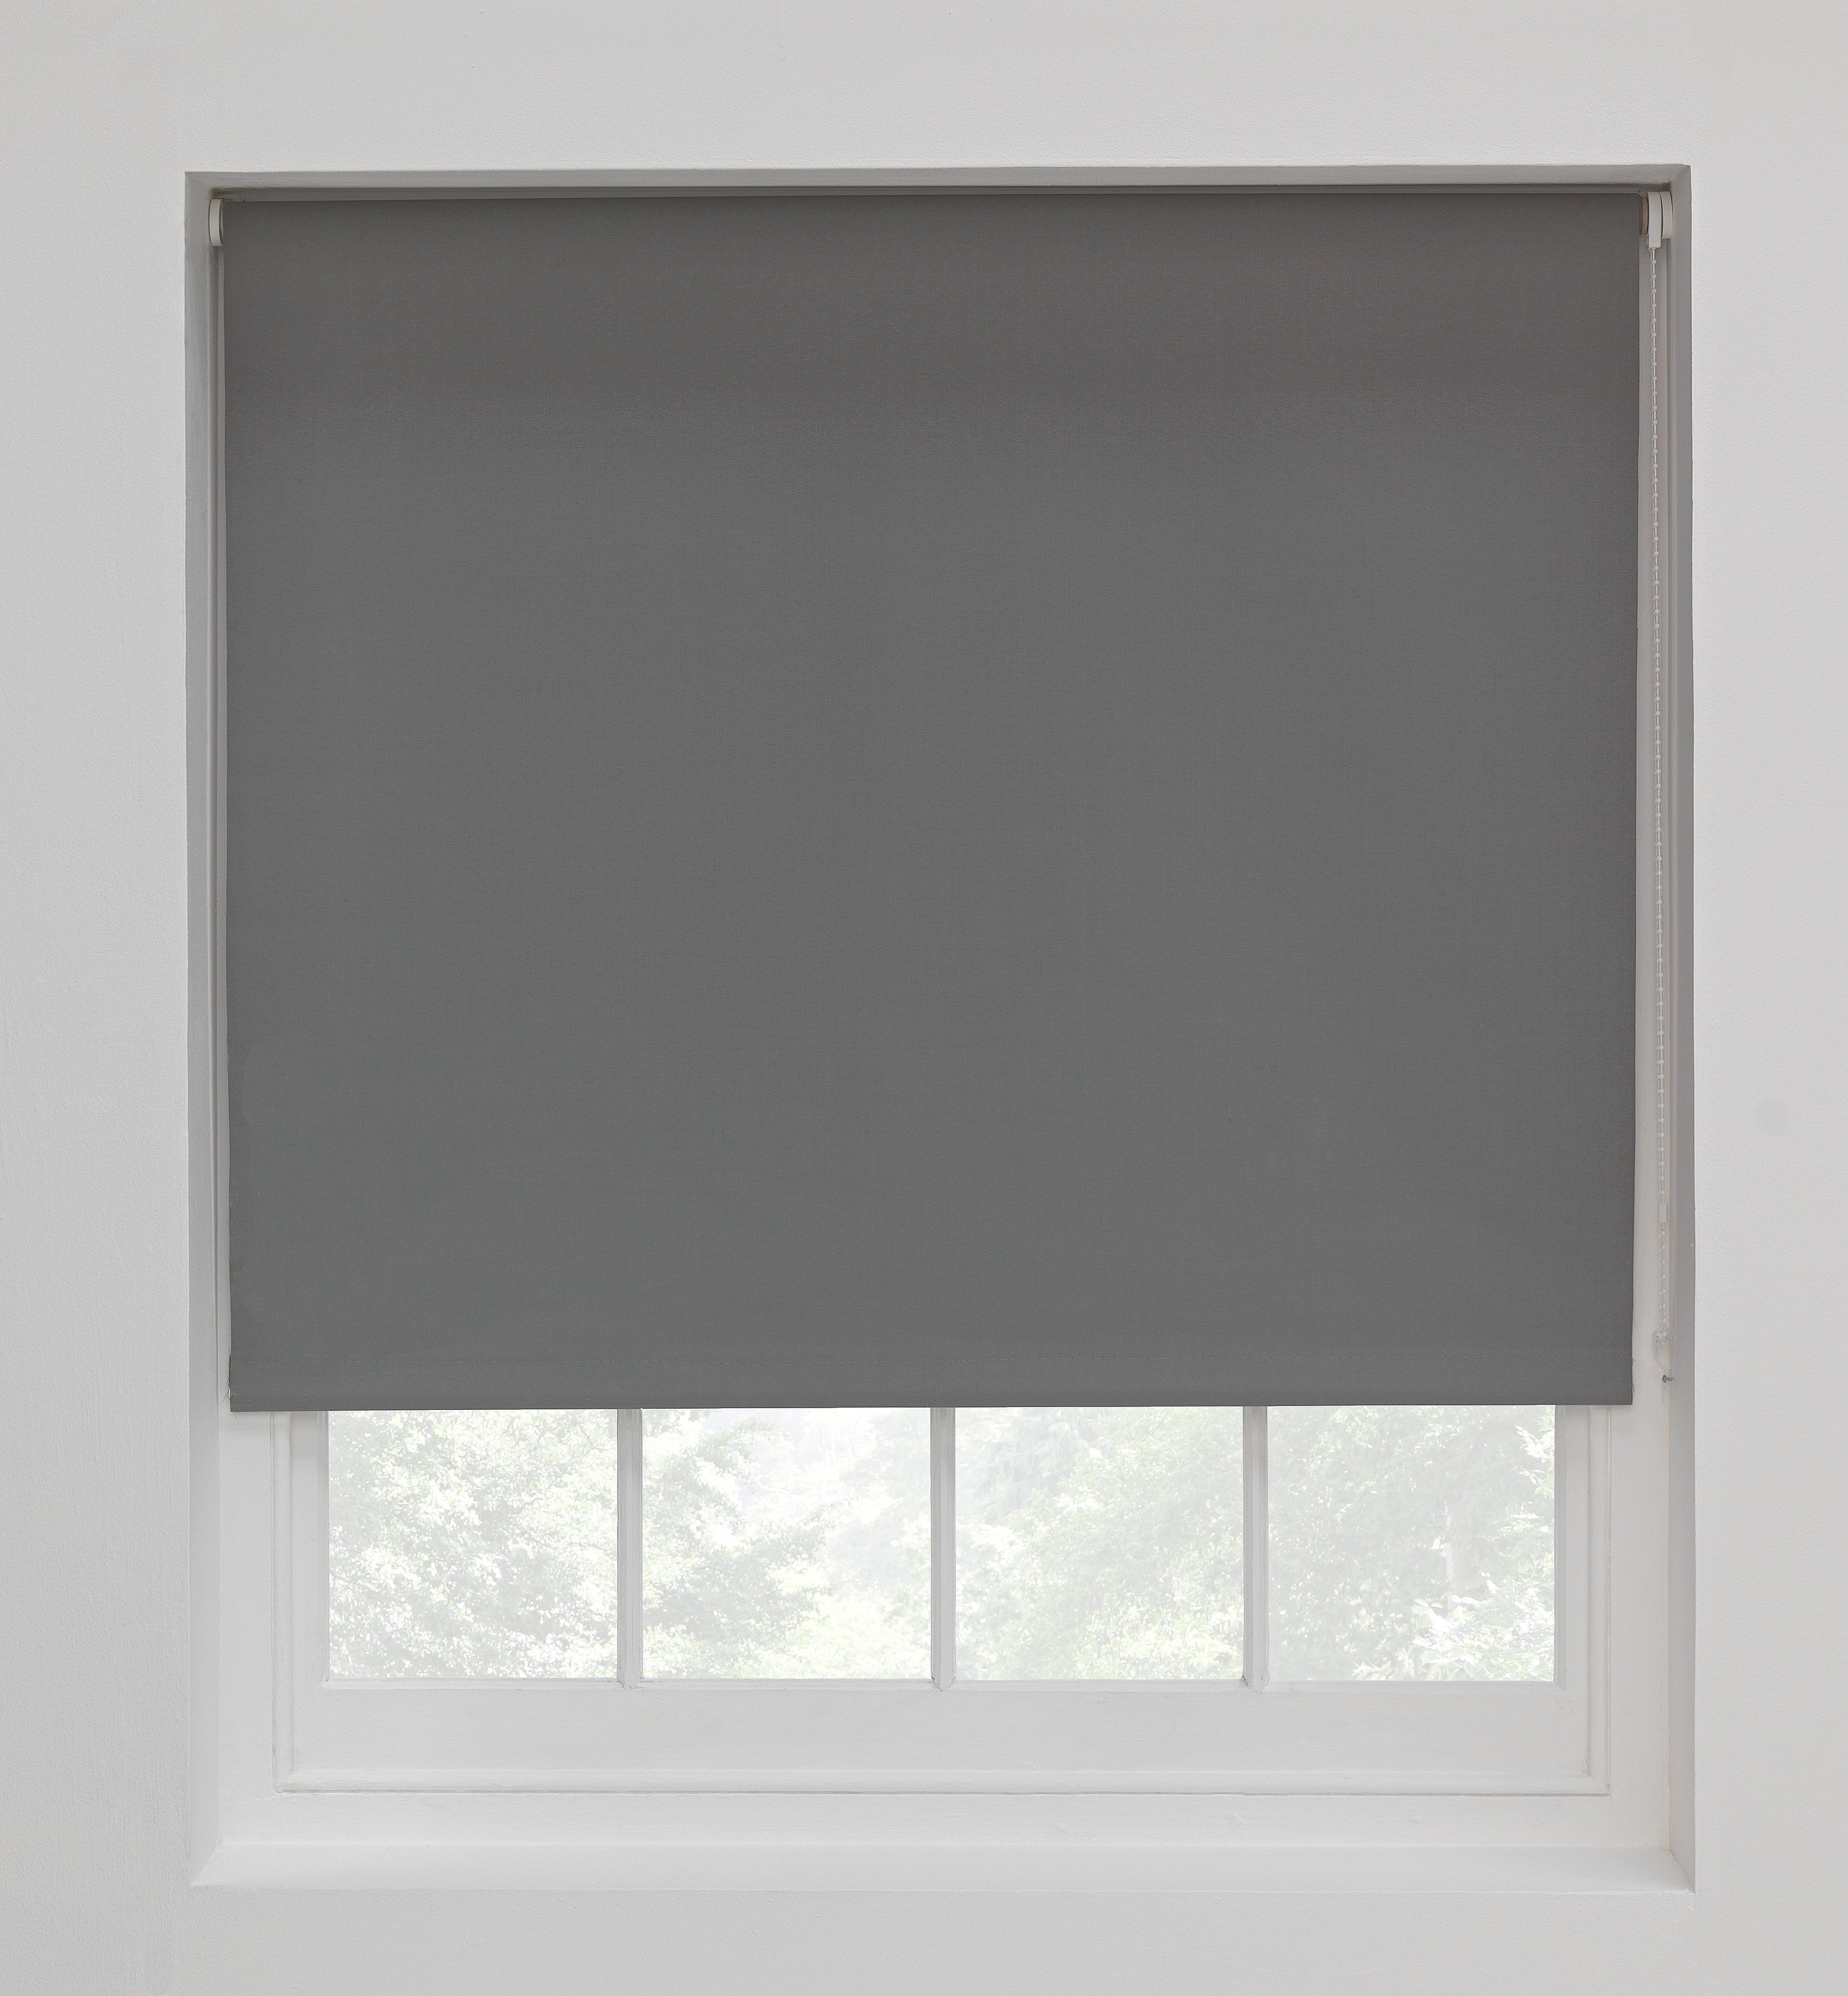 Buy ColourMatch Blackout Thermal Roller Blind 4ft Flint Grey at